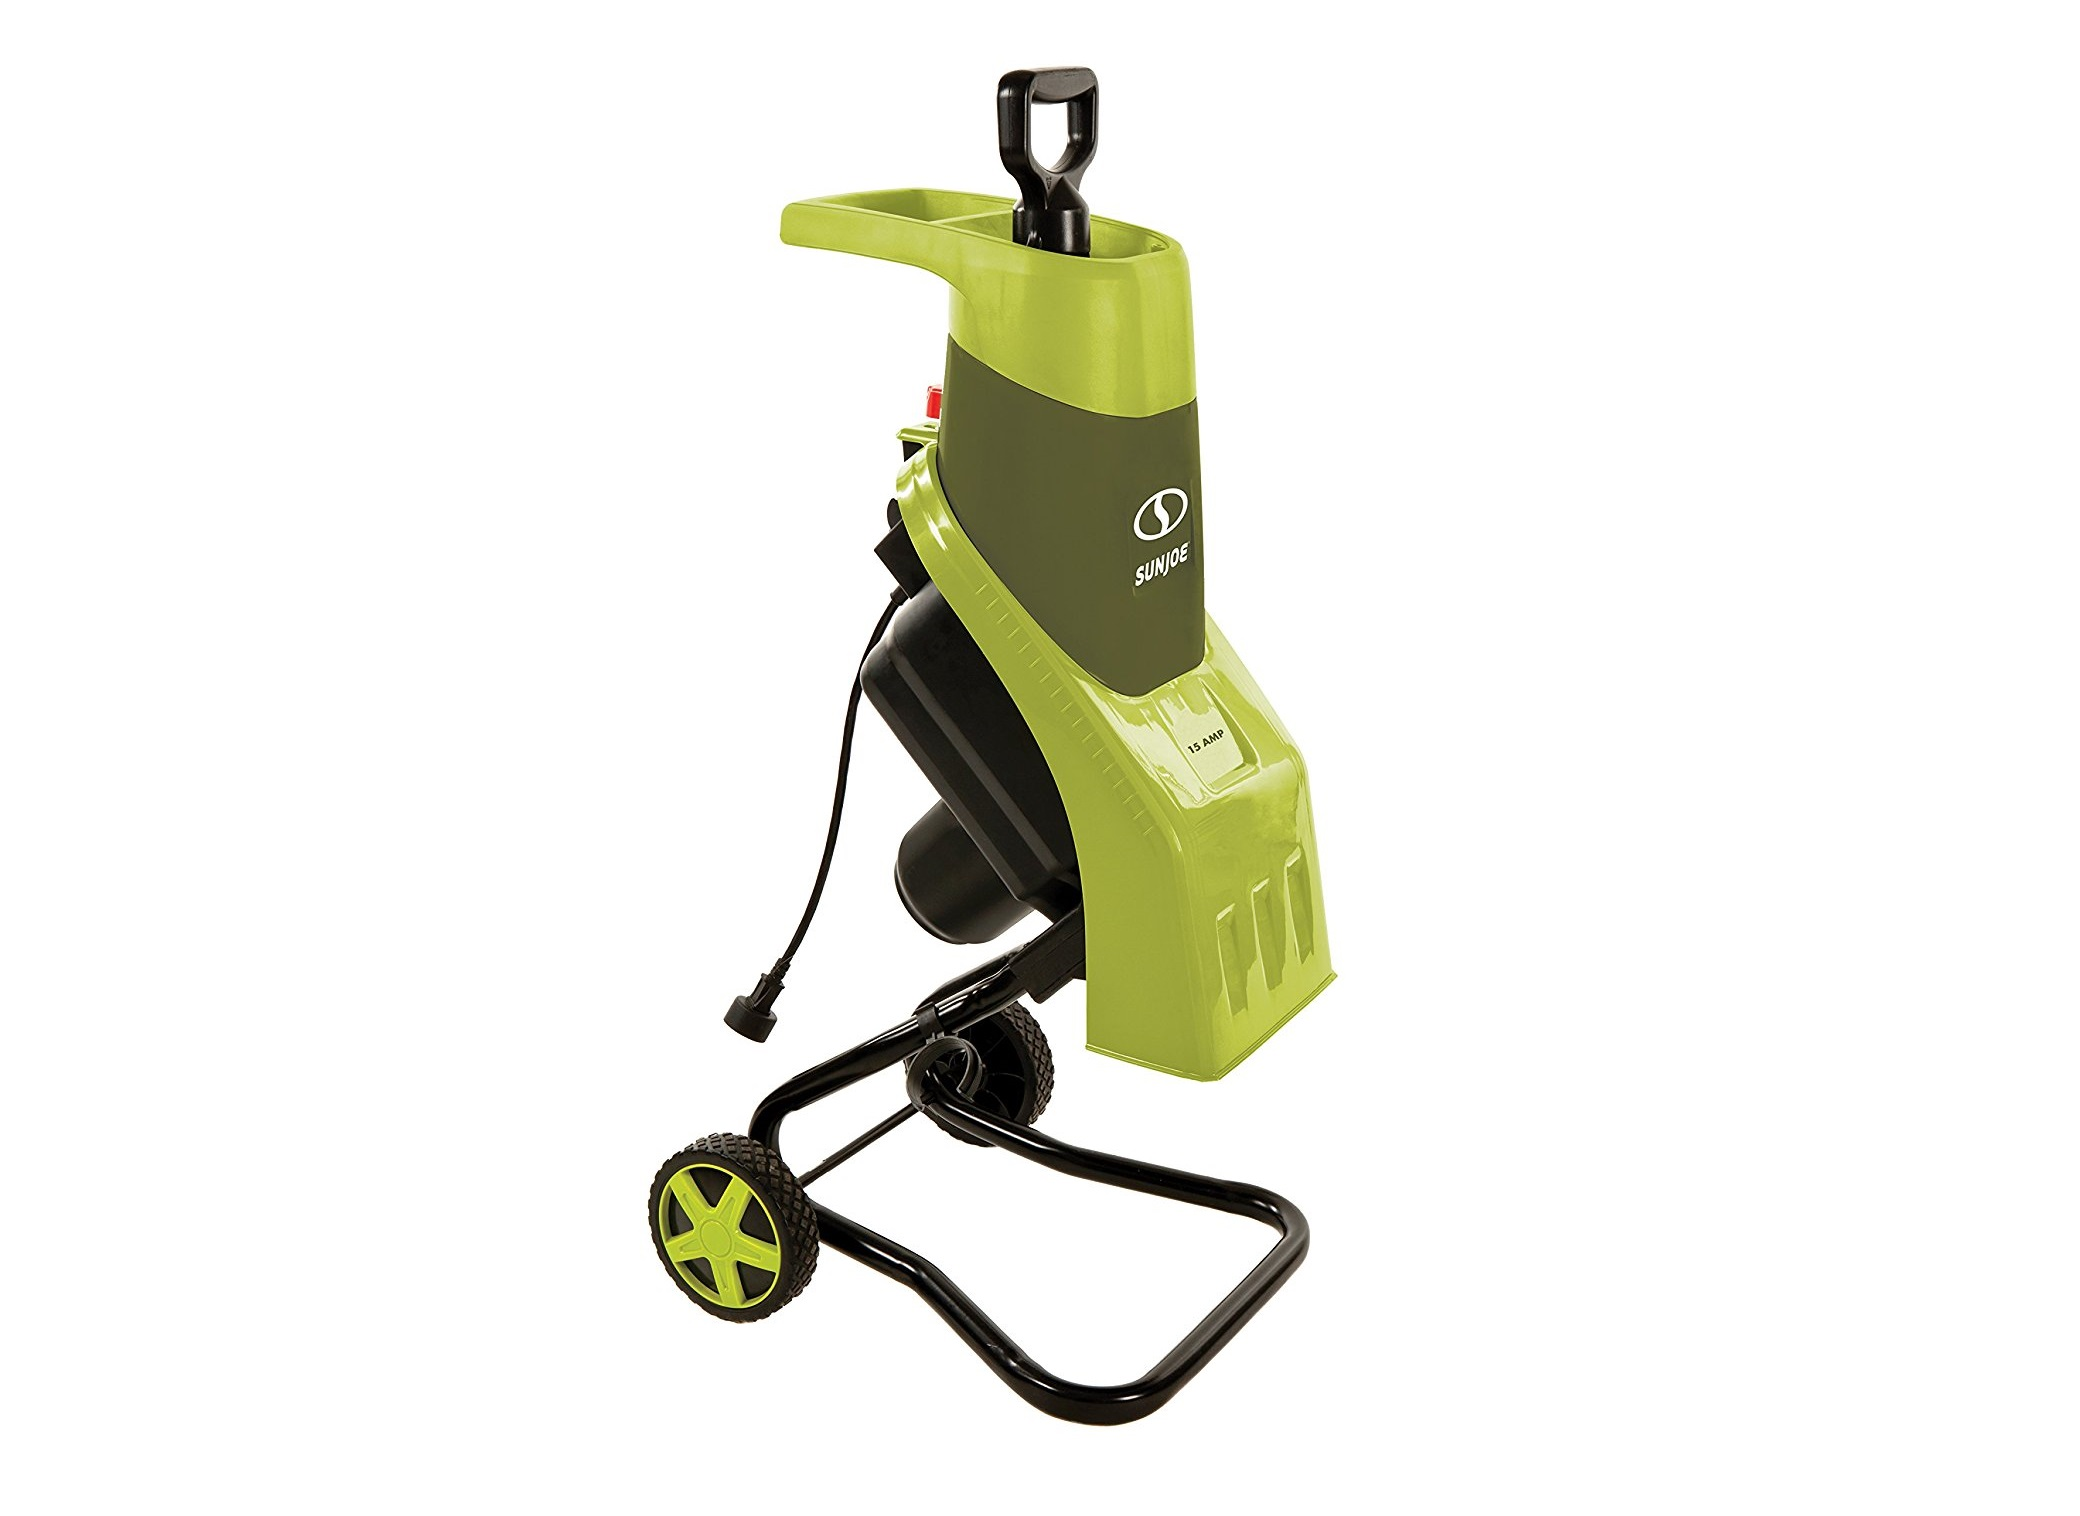 Top 10 Best Wood Chippers in 2020